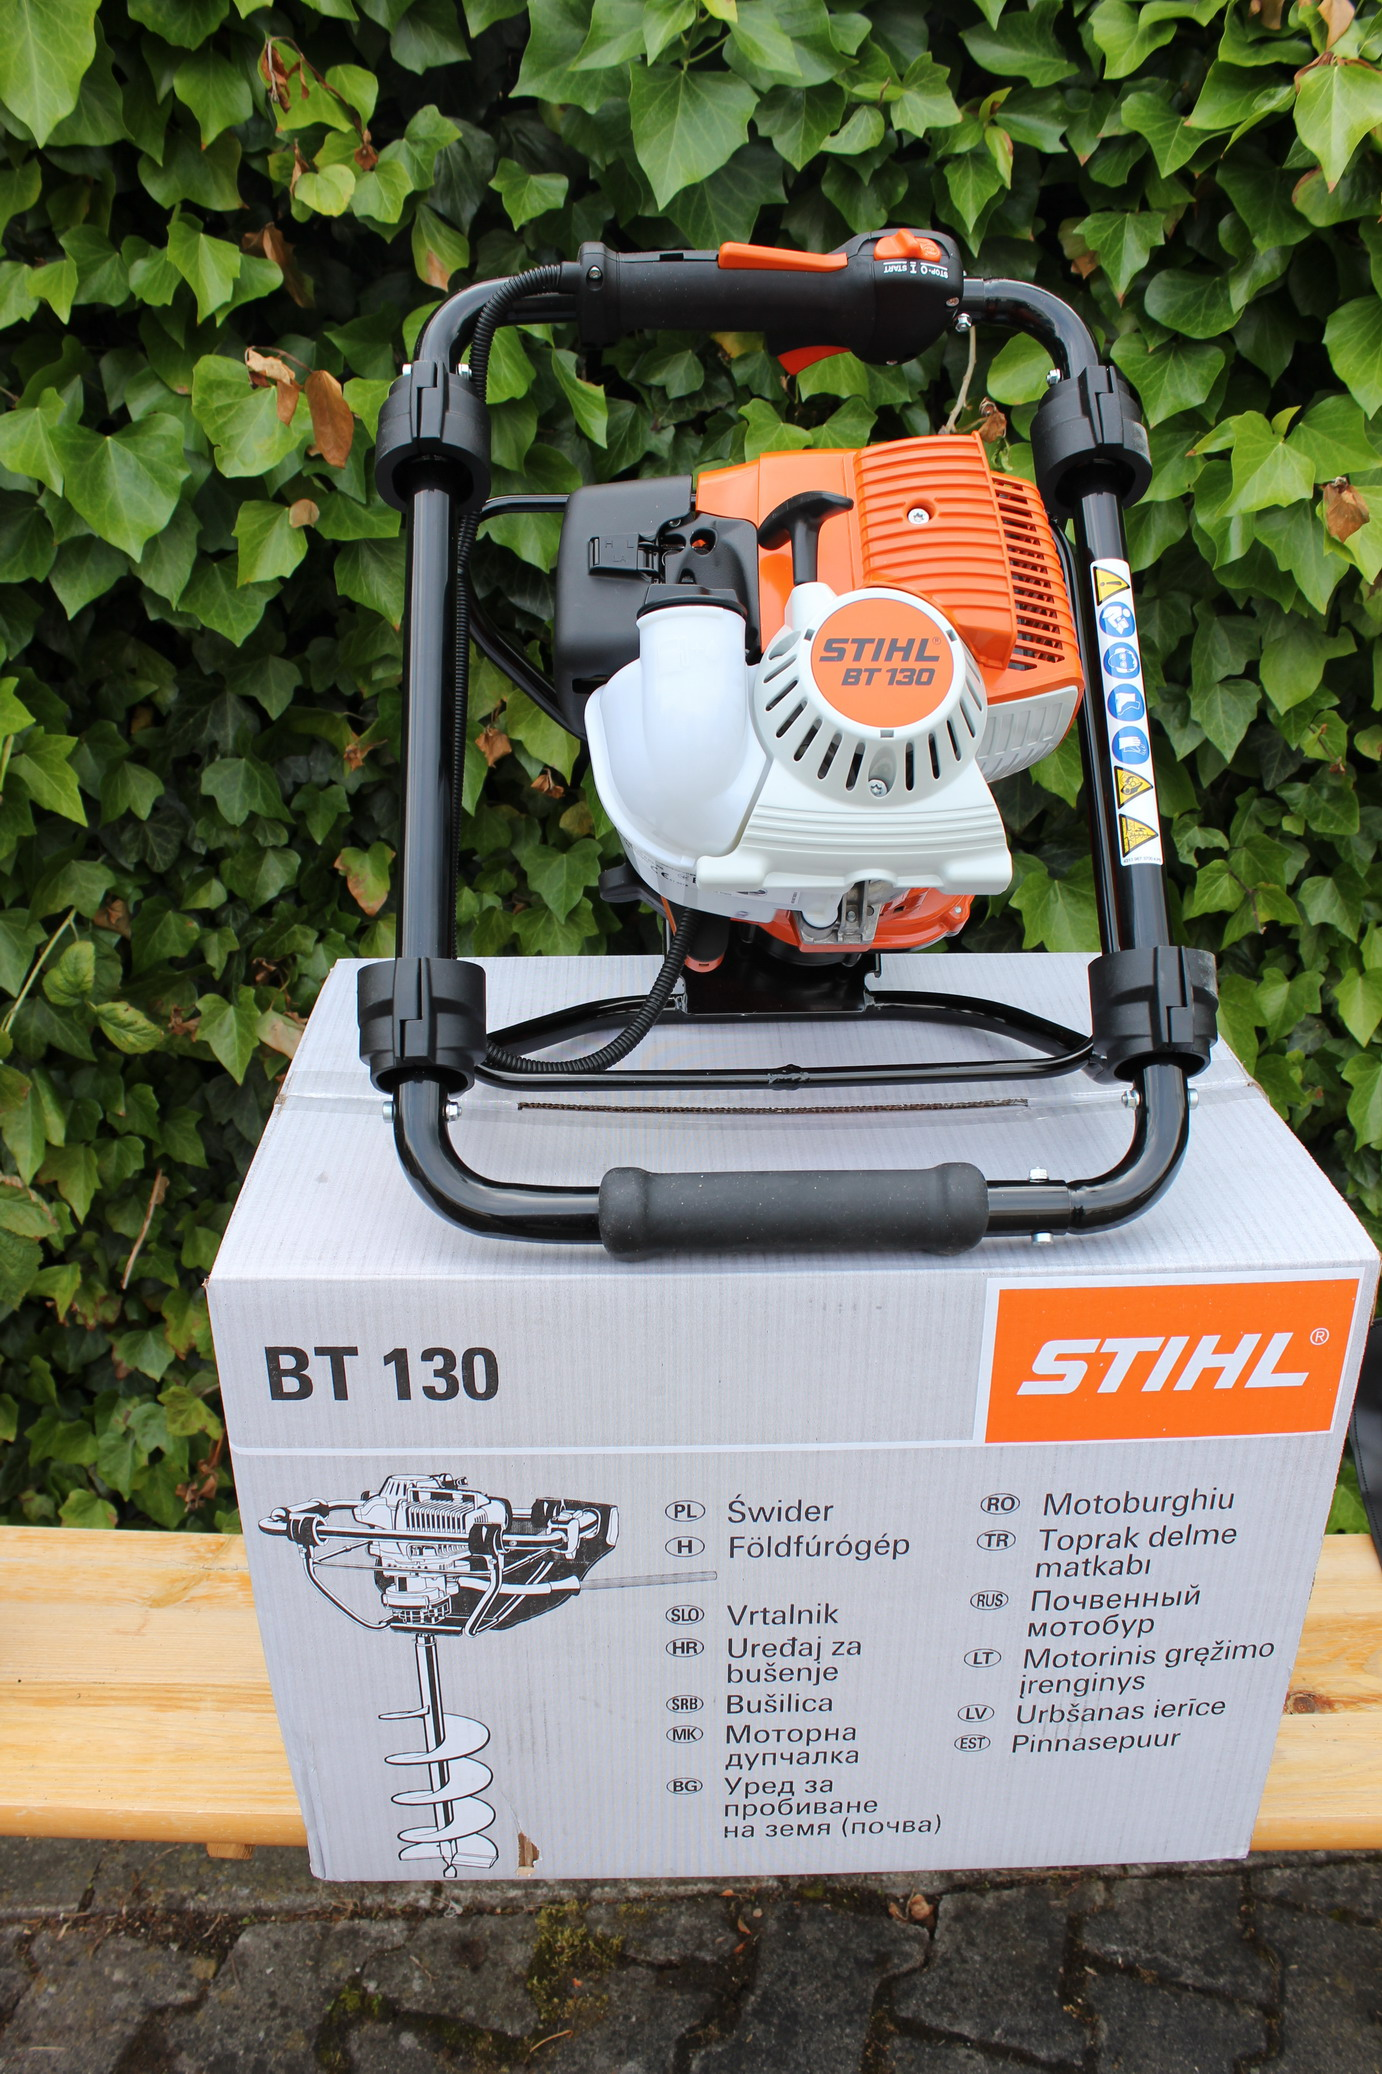 stihl bt 130 erdbohrger t neu bohrger t erdbohrer pfahlbohrer einmann bohrger t ebay. Black Bedroom Furniture Sets. Home Design Ideas